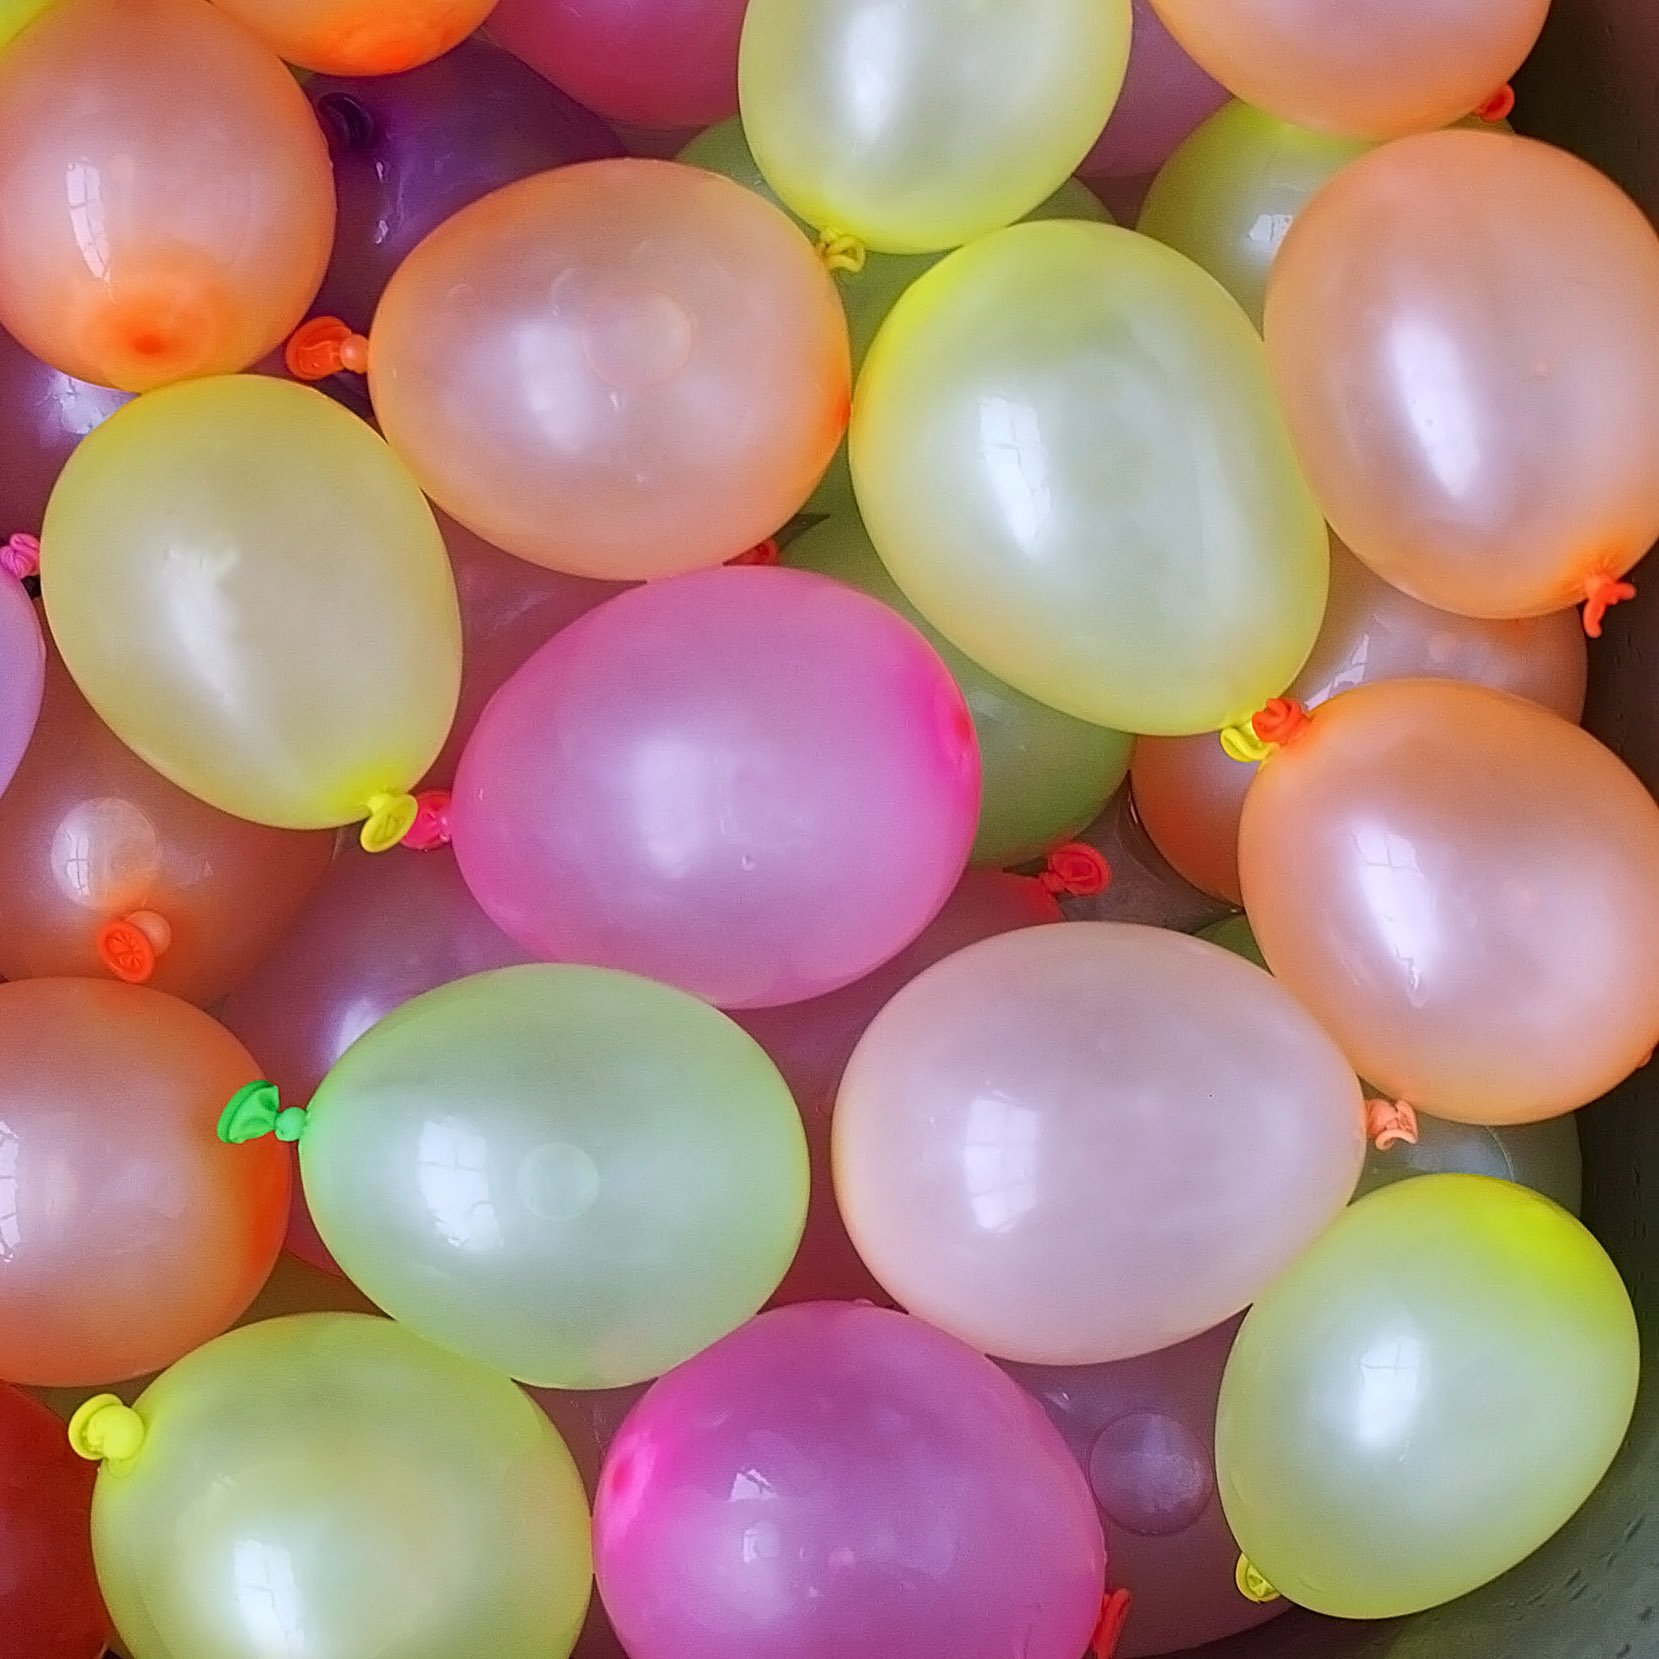 Cool & Fun {110 Count Pack} of 4'' Inch ''Standard Size'' Water Balloon Bomb Grenades Made of Latex Rubber w/ Pre Tied Cool Design {Pink, Blue, Yellow, Orange & Green Colored} w/ Nozzle Attachment